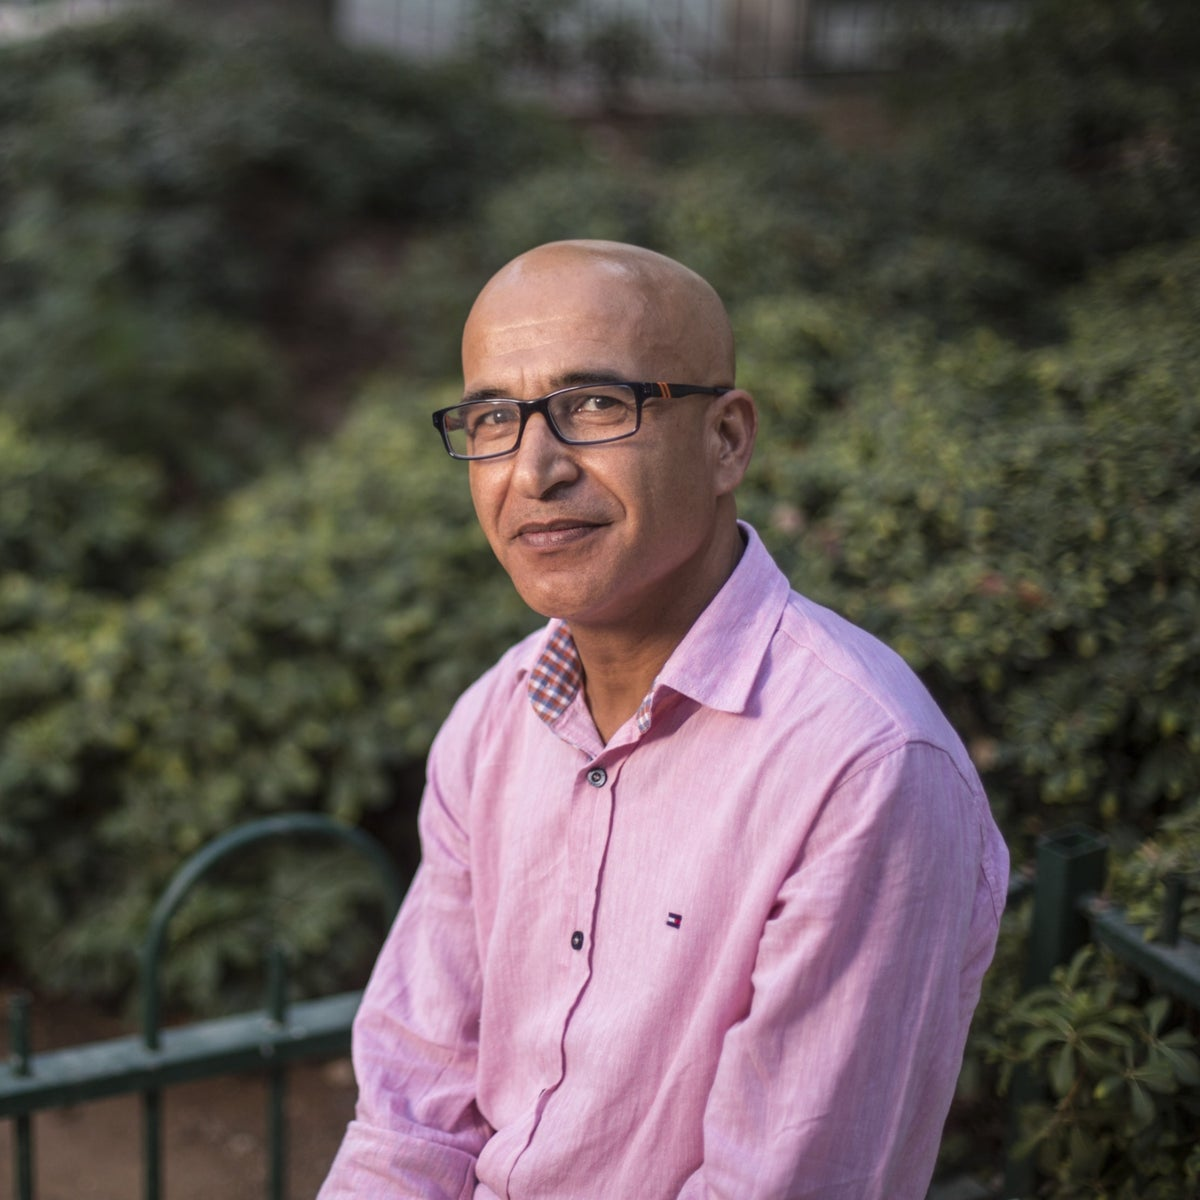 Mohammed Mansour, a psychologist who volunteers in Gaza with Physicians for Human Rights.